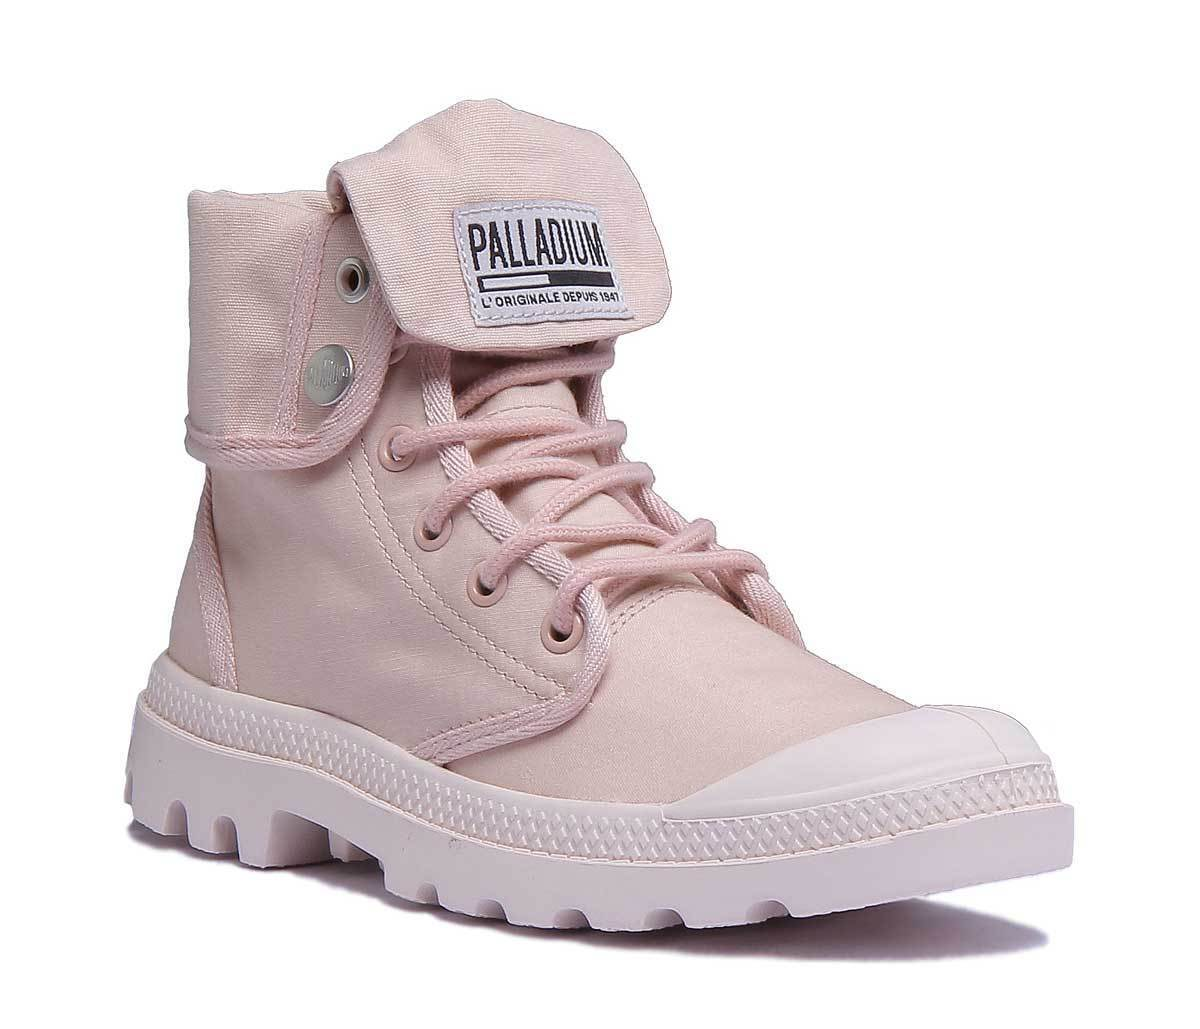 Palladium Army Trng Camp Womens pink gold Canvas Boots Boots Boots Size UK 3 - 8 2ce013